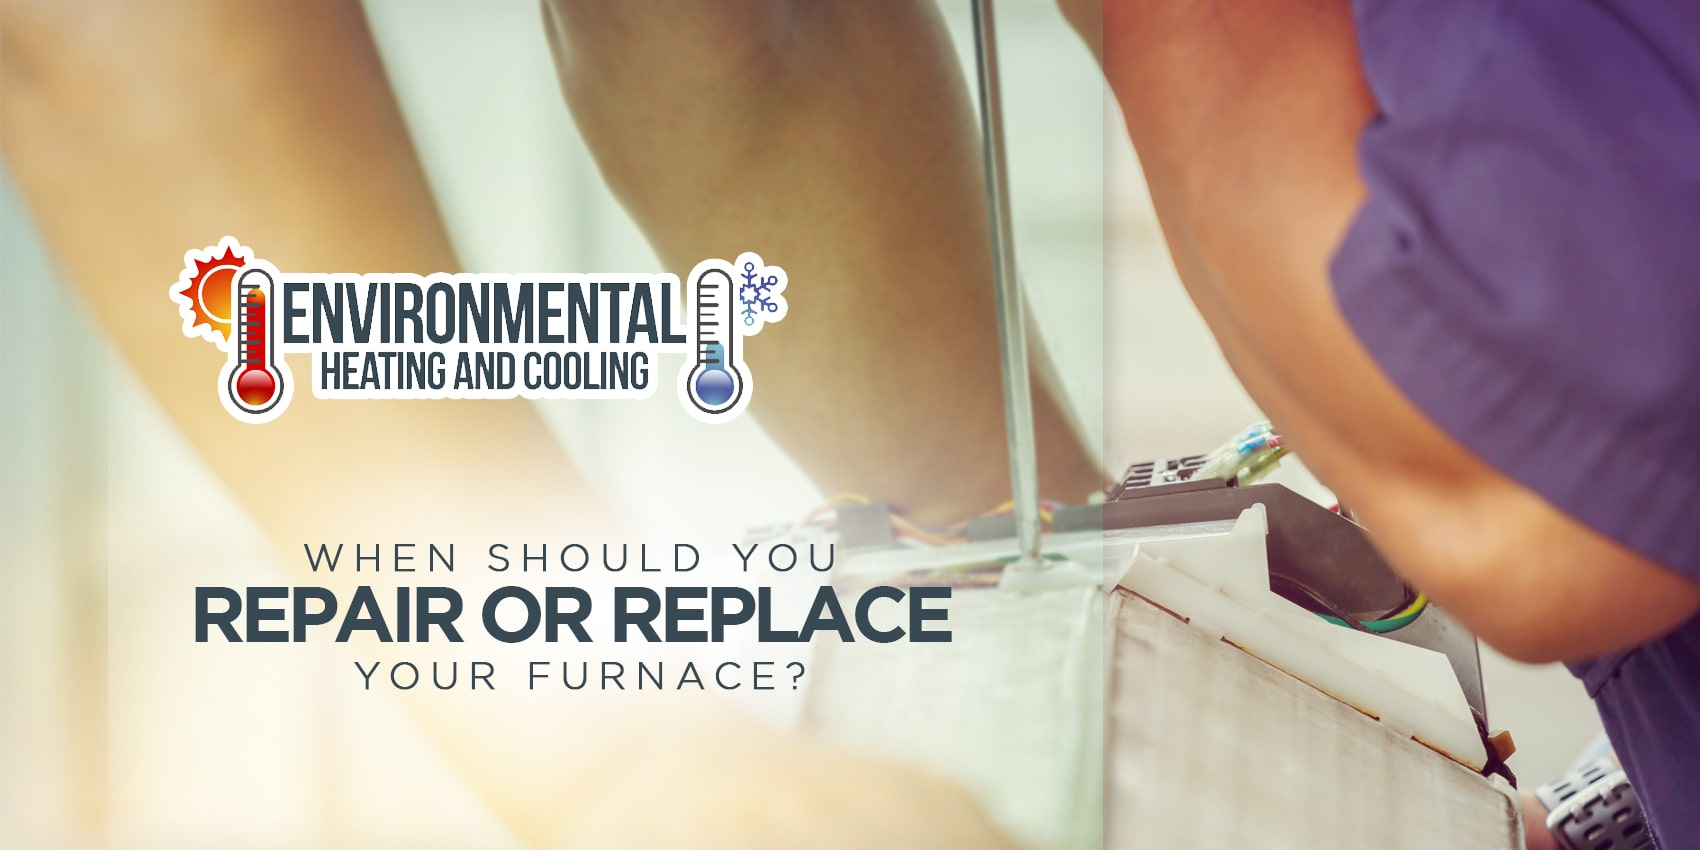 When Should You Repair or Replace Your Furnace?